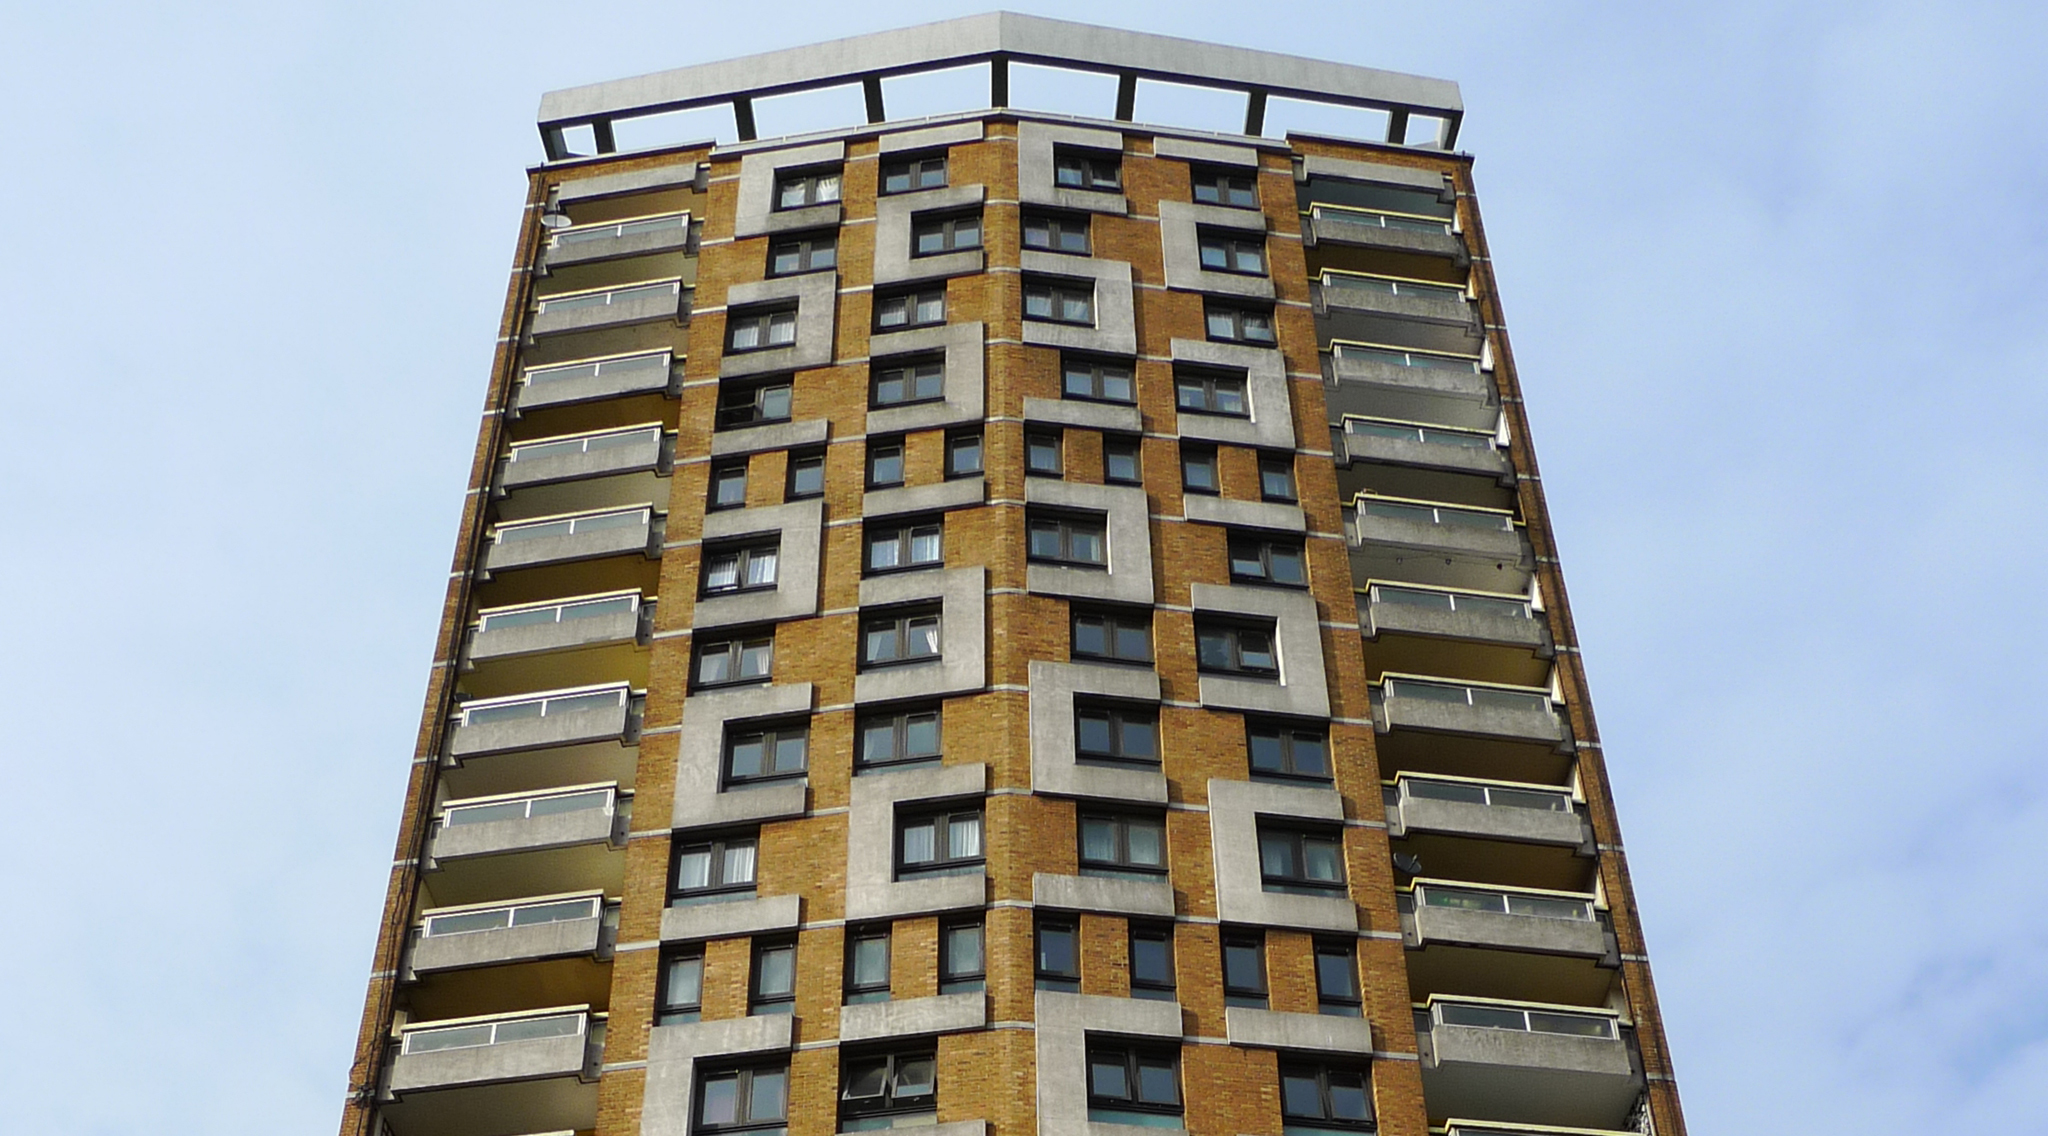 Best buildings in London: Sivill House